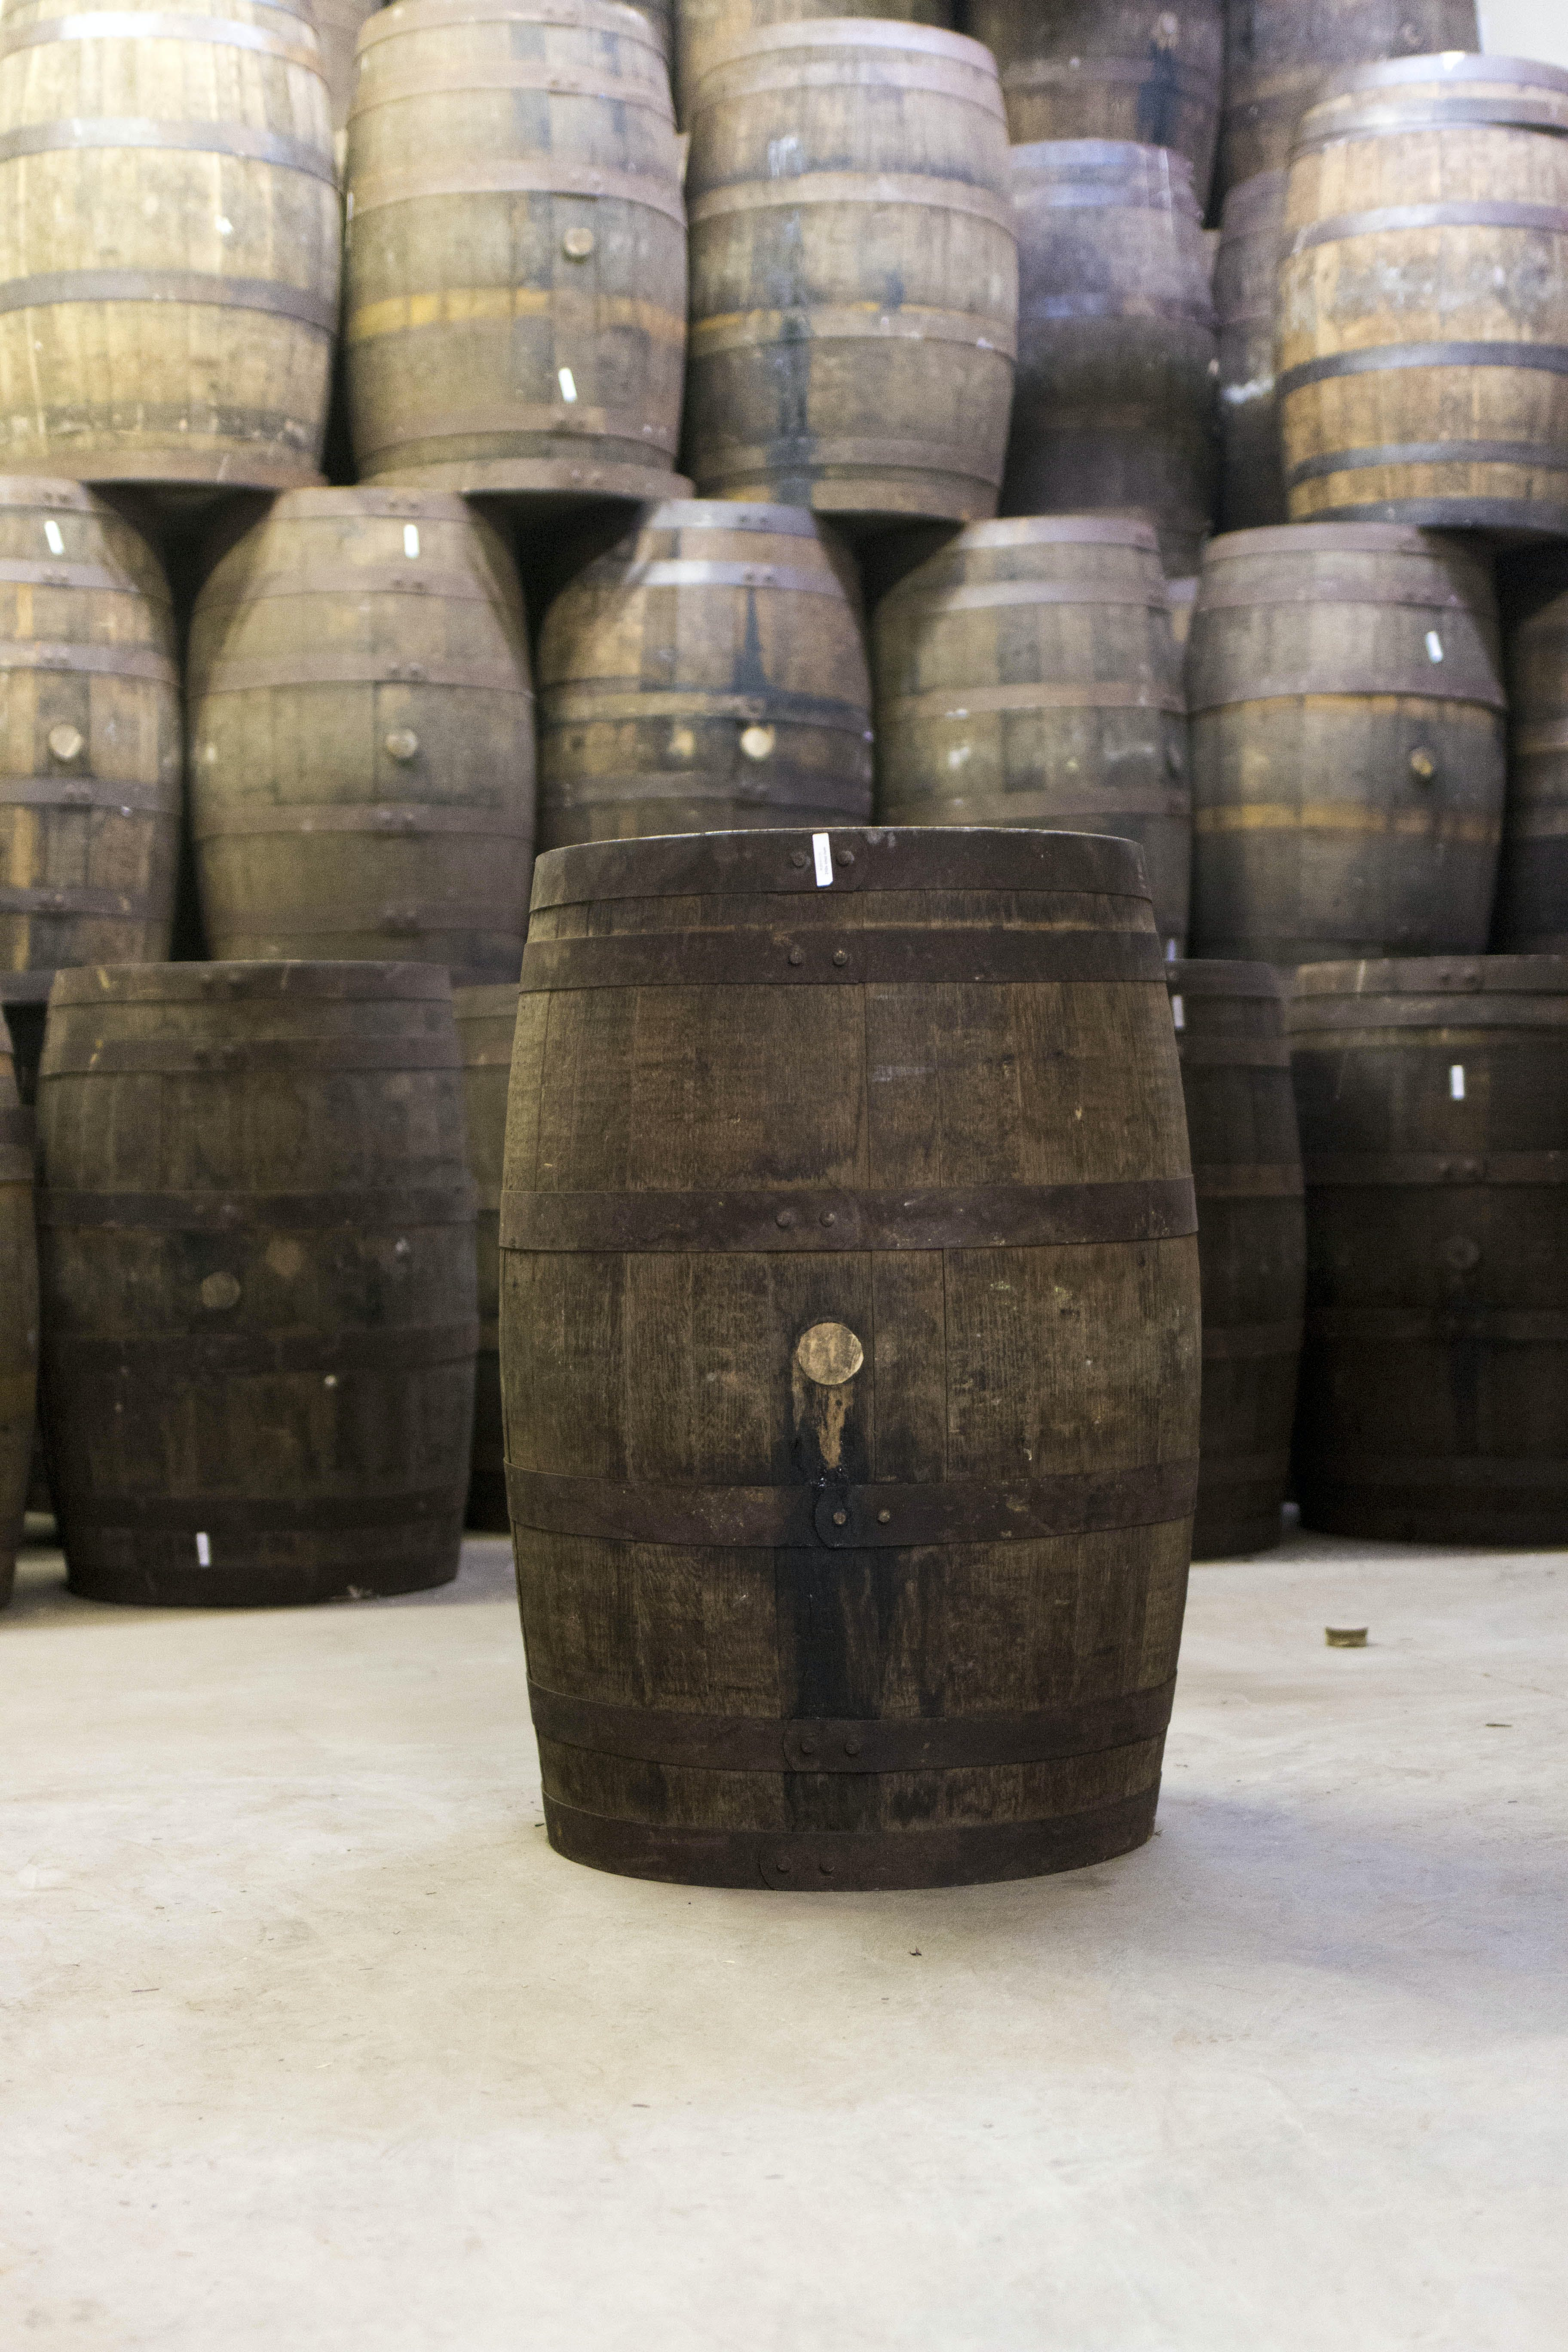 USED Rum Barrels (Imported) Whiskey barrel sold by Rocky Mountain Barrel Company